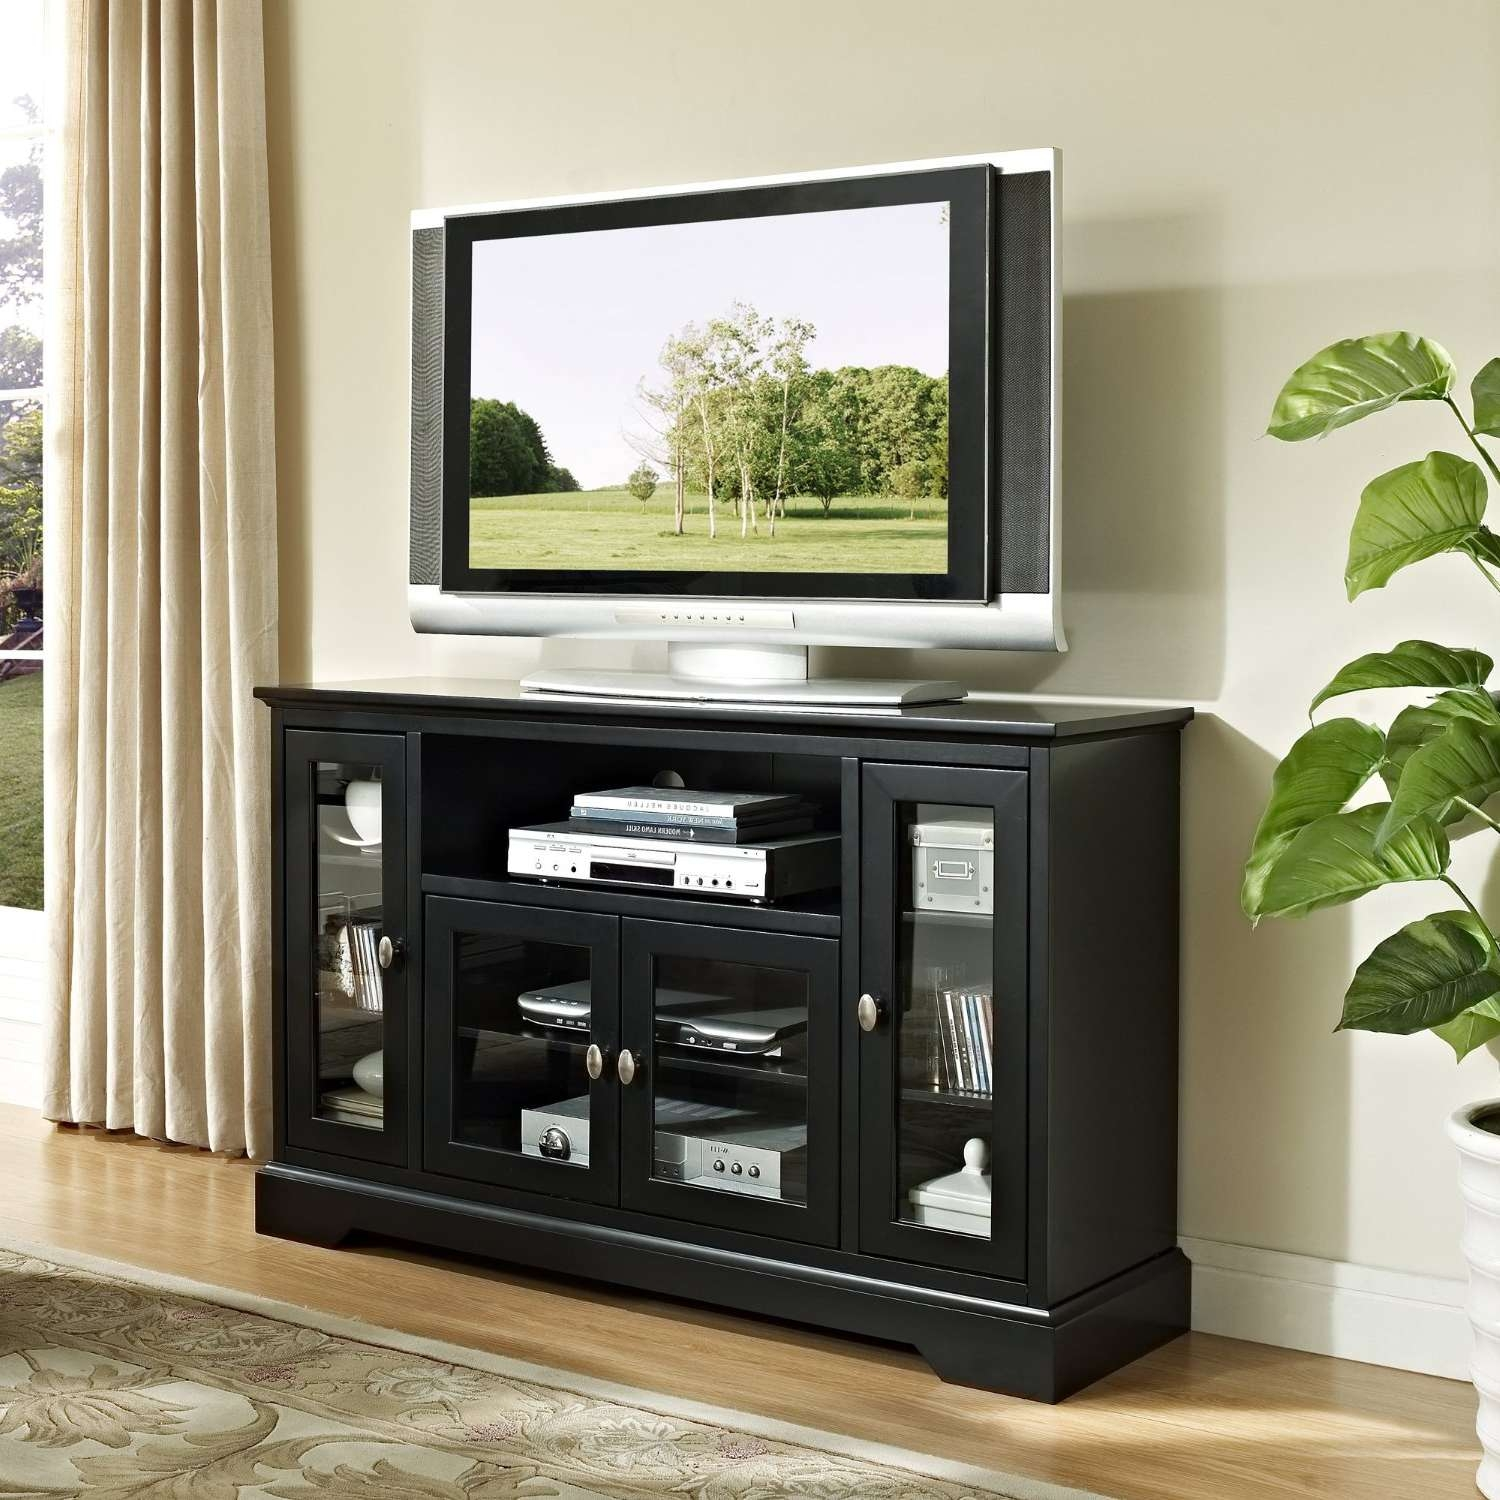 Light Wood Tv Stand Simple Room With Ikea Besta Media Cabinet Of Pertaining To Wooden Tv Cabinets With Glass Doors (View 10 of 20)